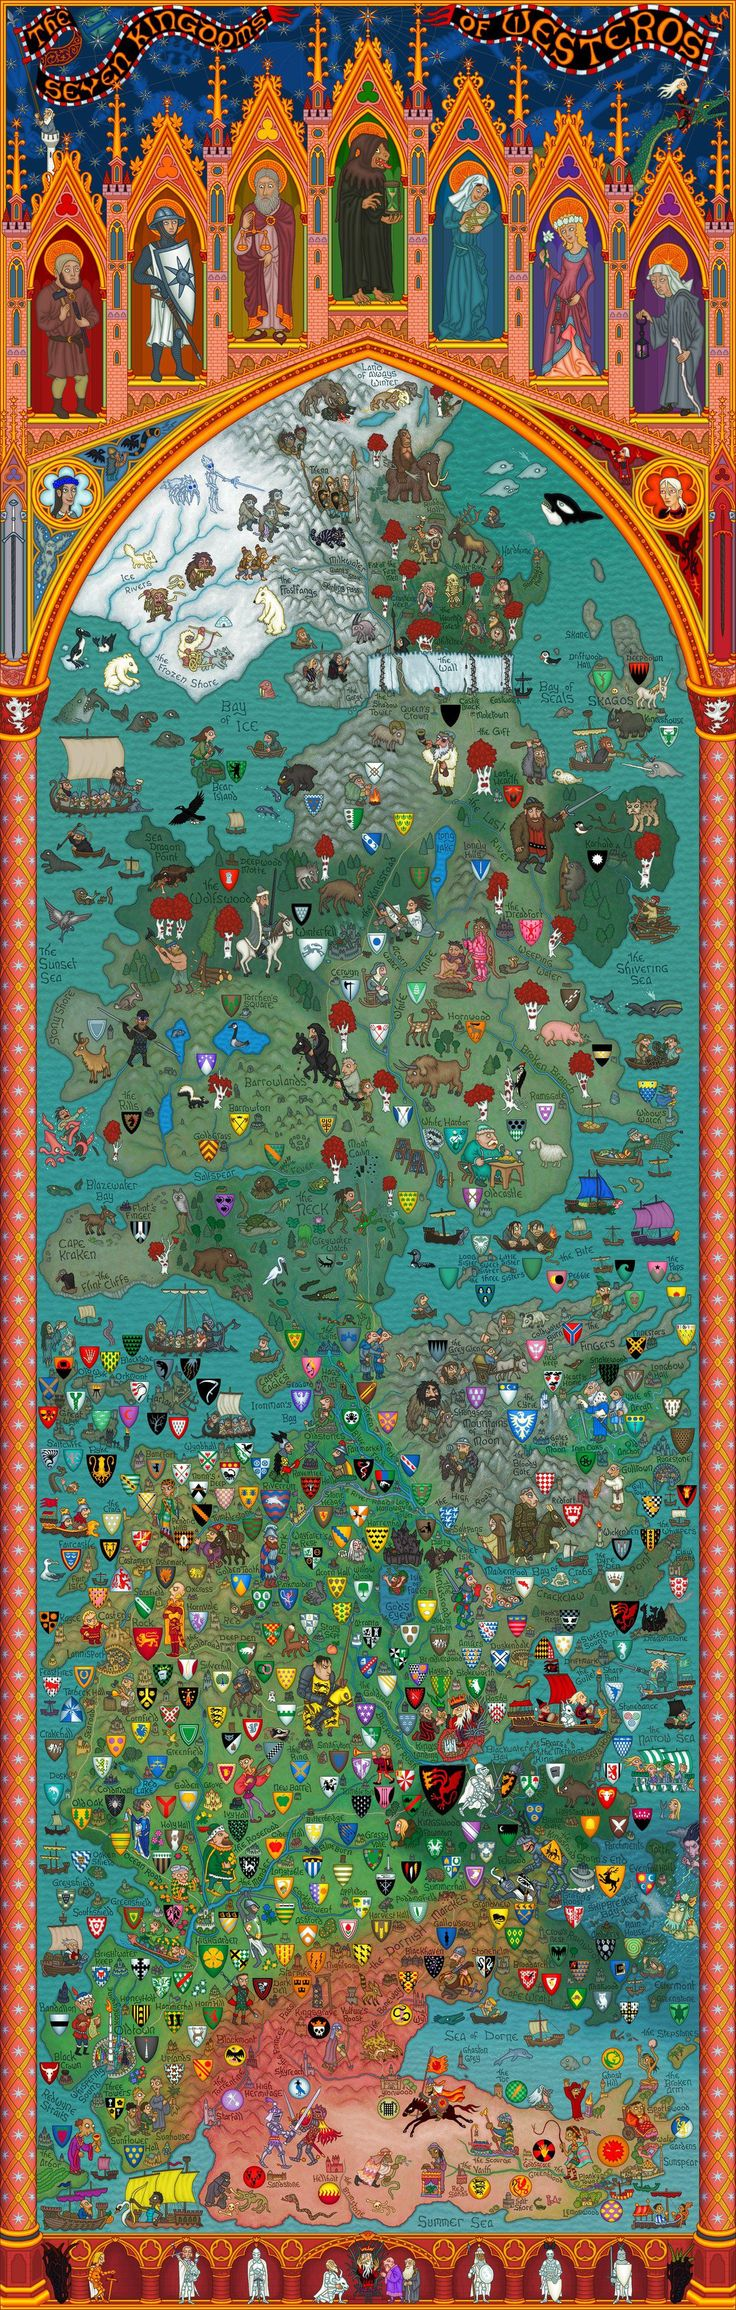 Lovely map of Game Of Thrones' Westeros - nice style and a myriad of crests!